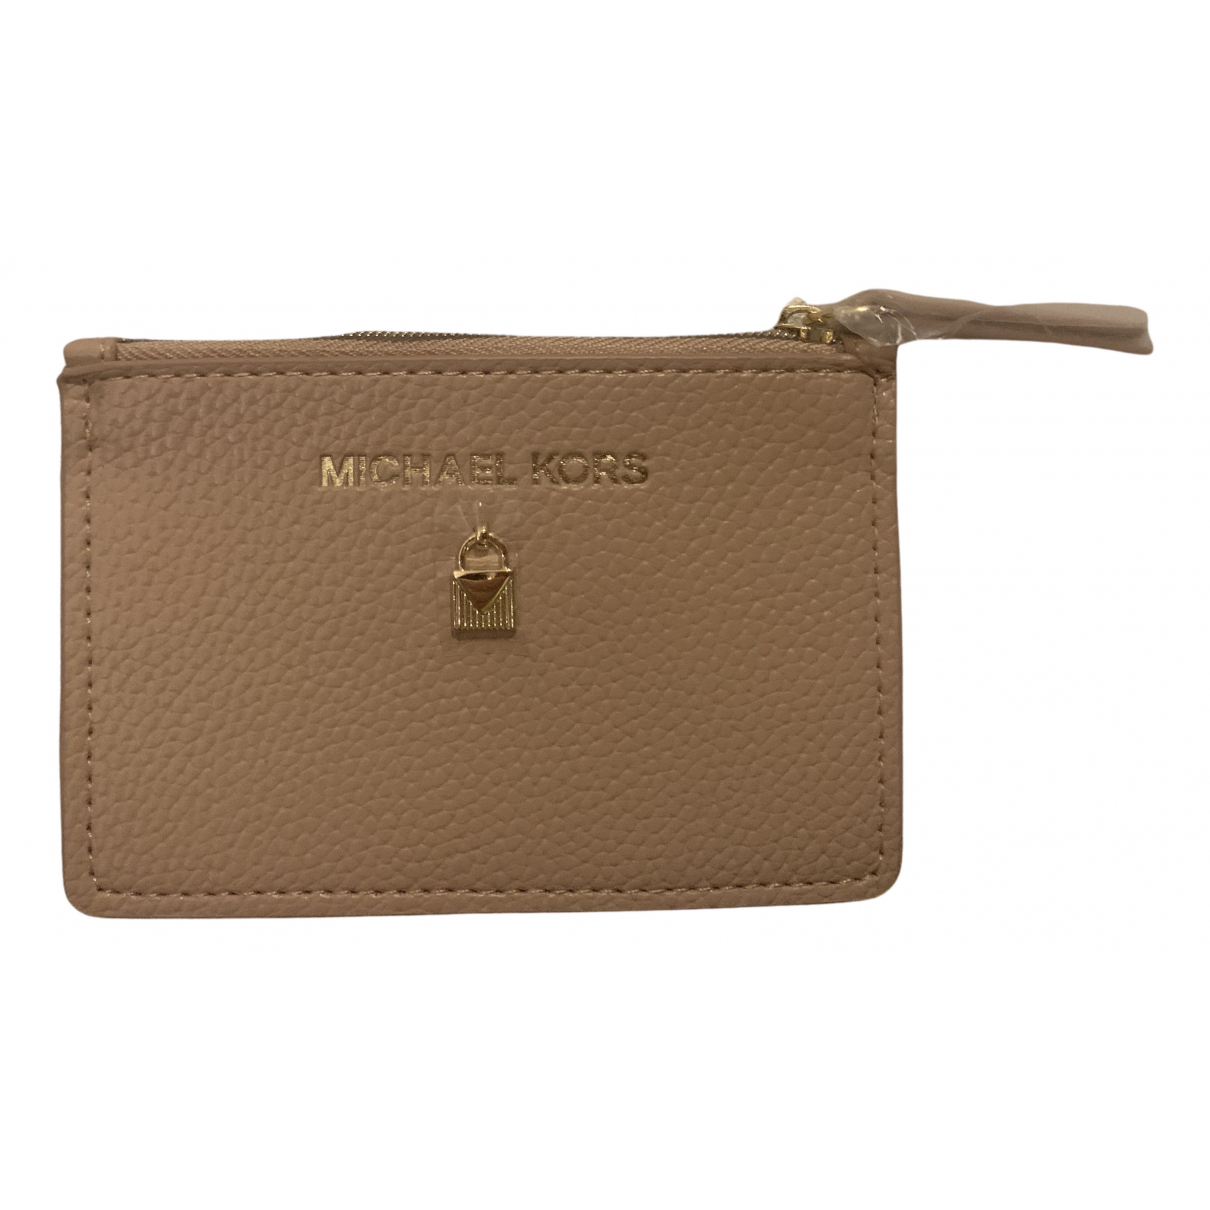 Michael Kors N Pink Leather Purses, wallet & cases for Women N